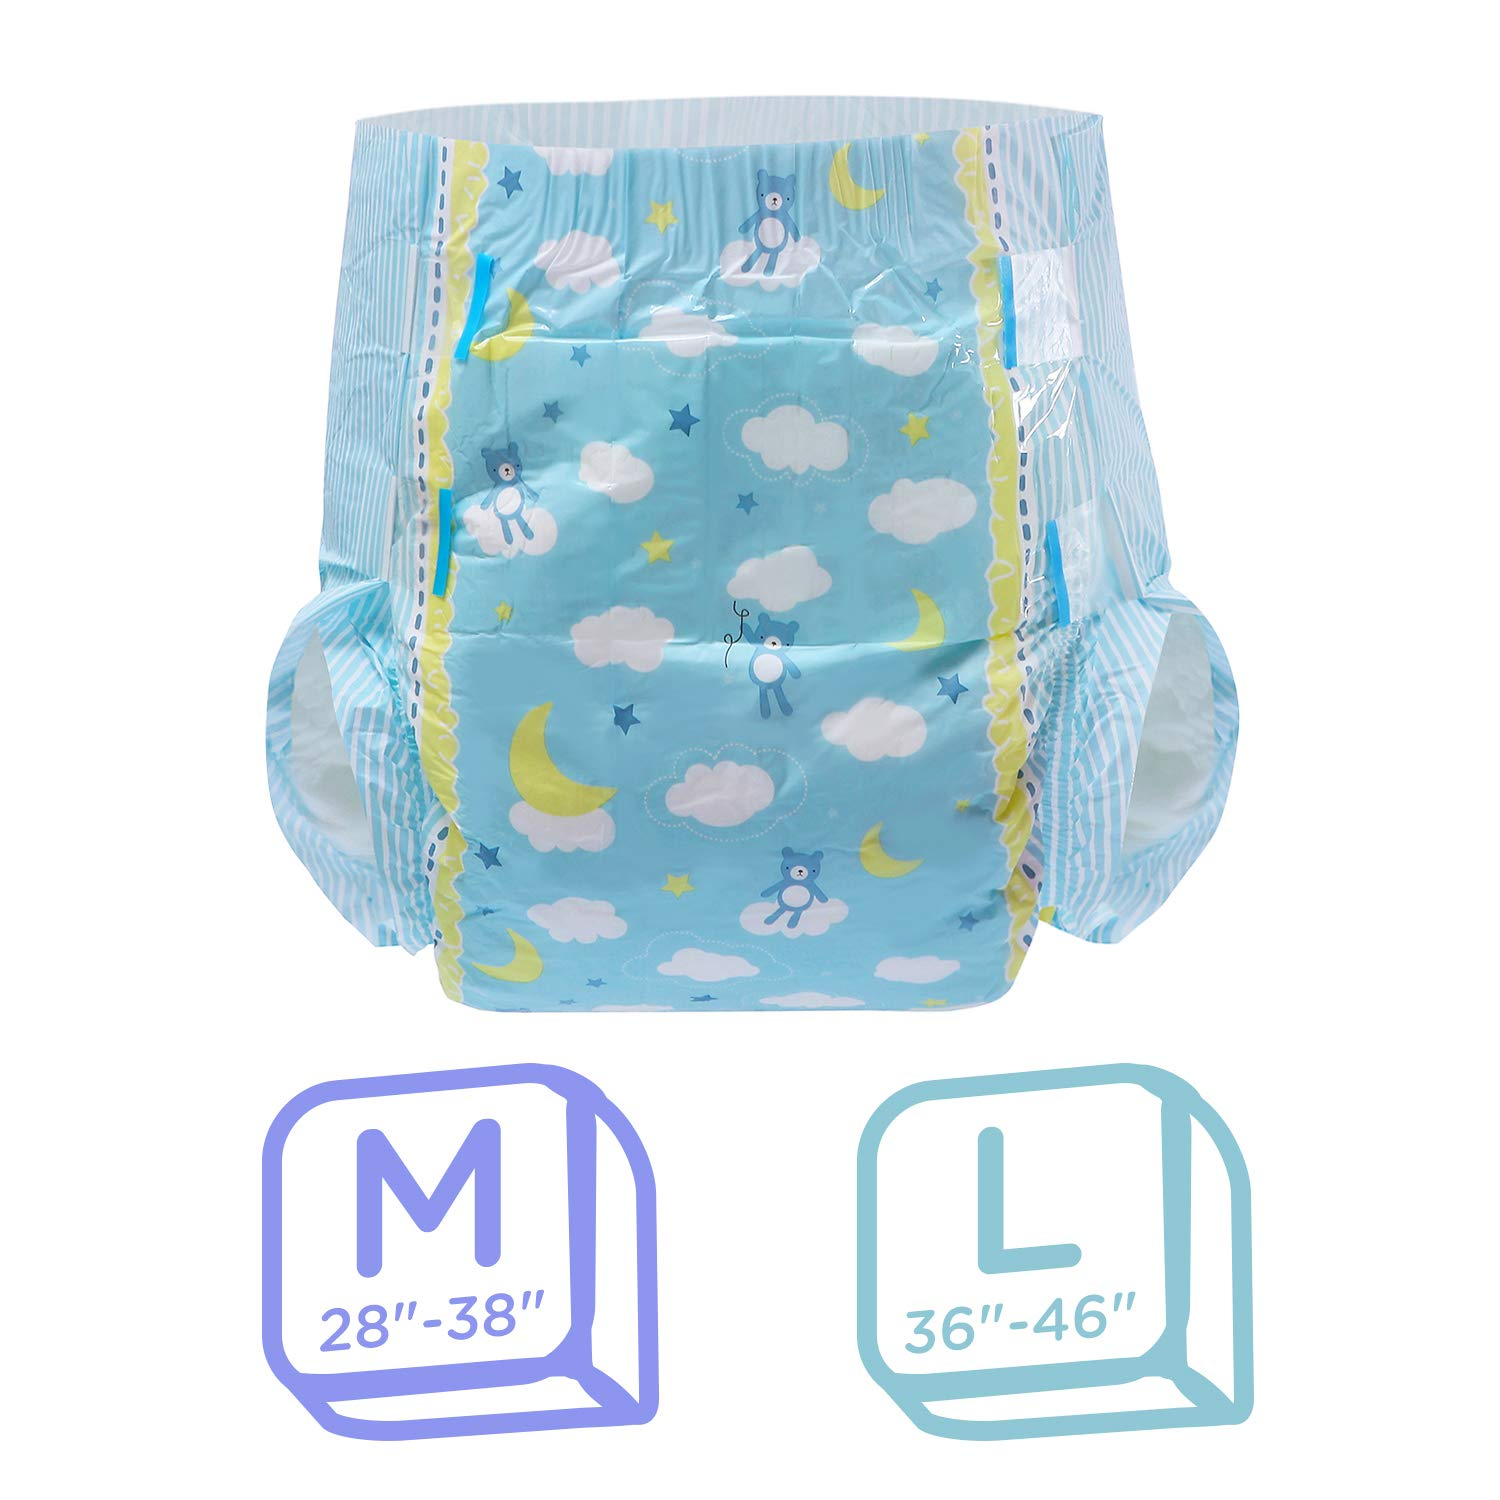 ABDry White Diapers LittleForBig Adult Diaper 10 Pieces Large 36-46